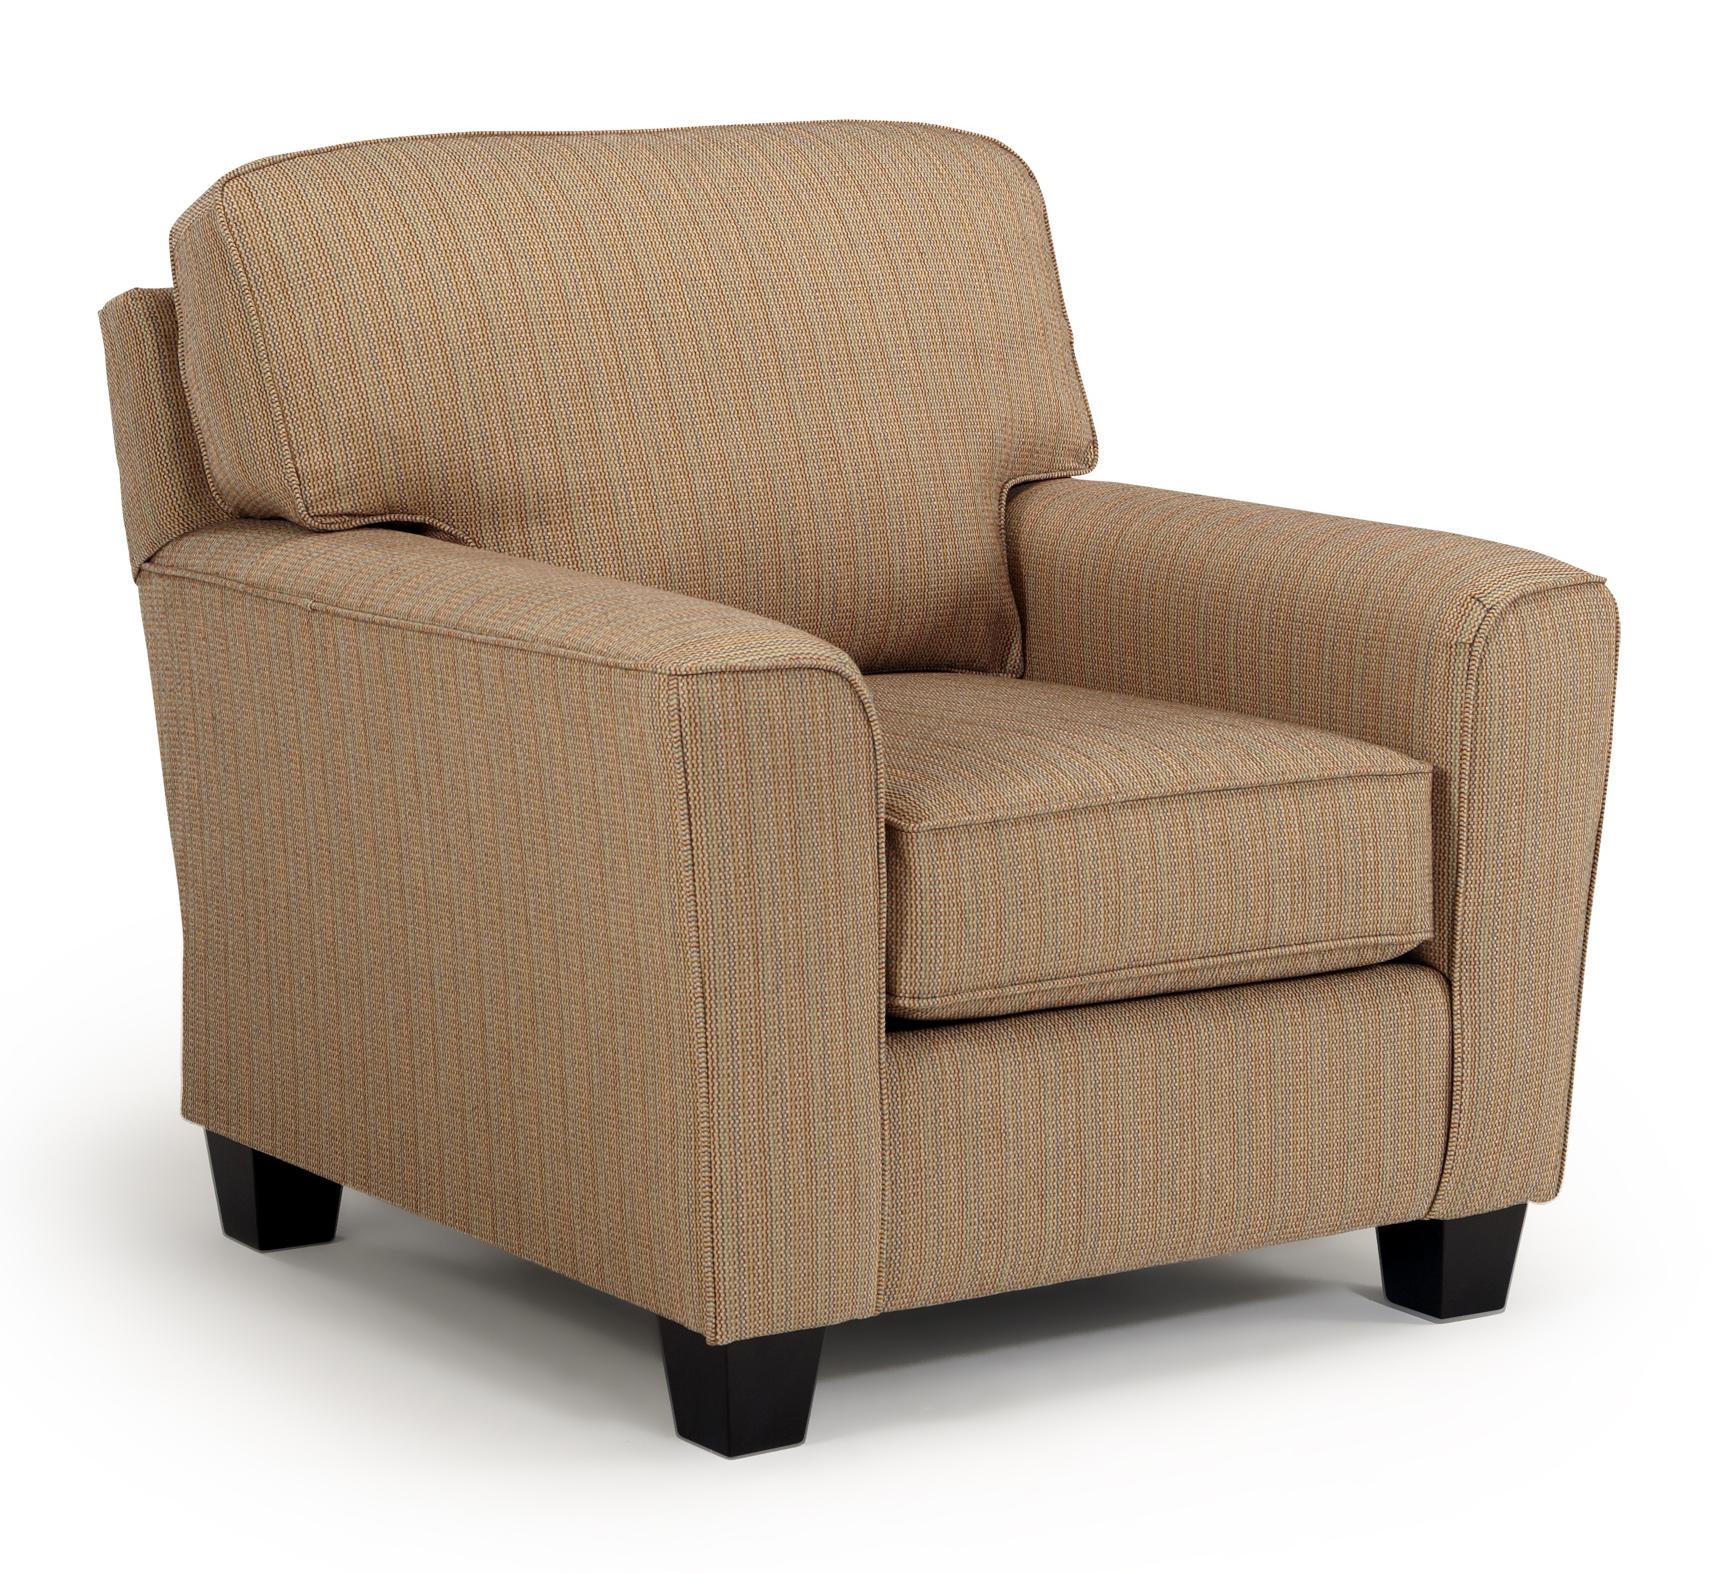 Annabel  Custom Chair by Best Home Furnishings at Home Furnishings Direct